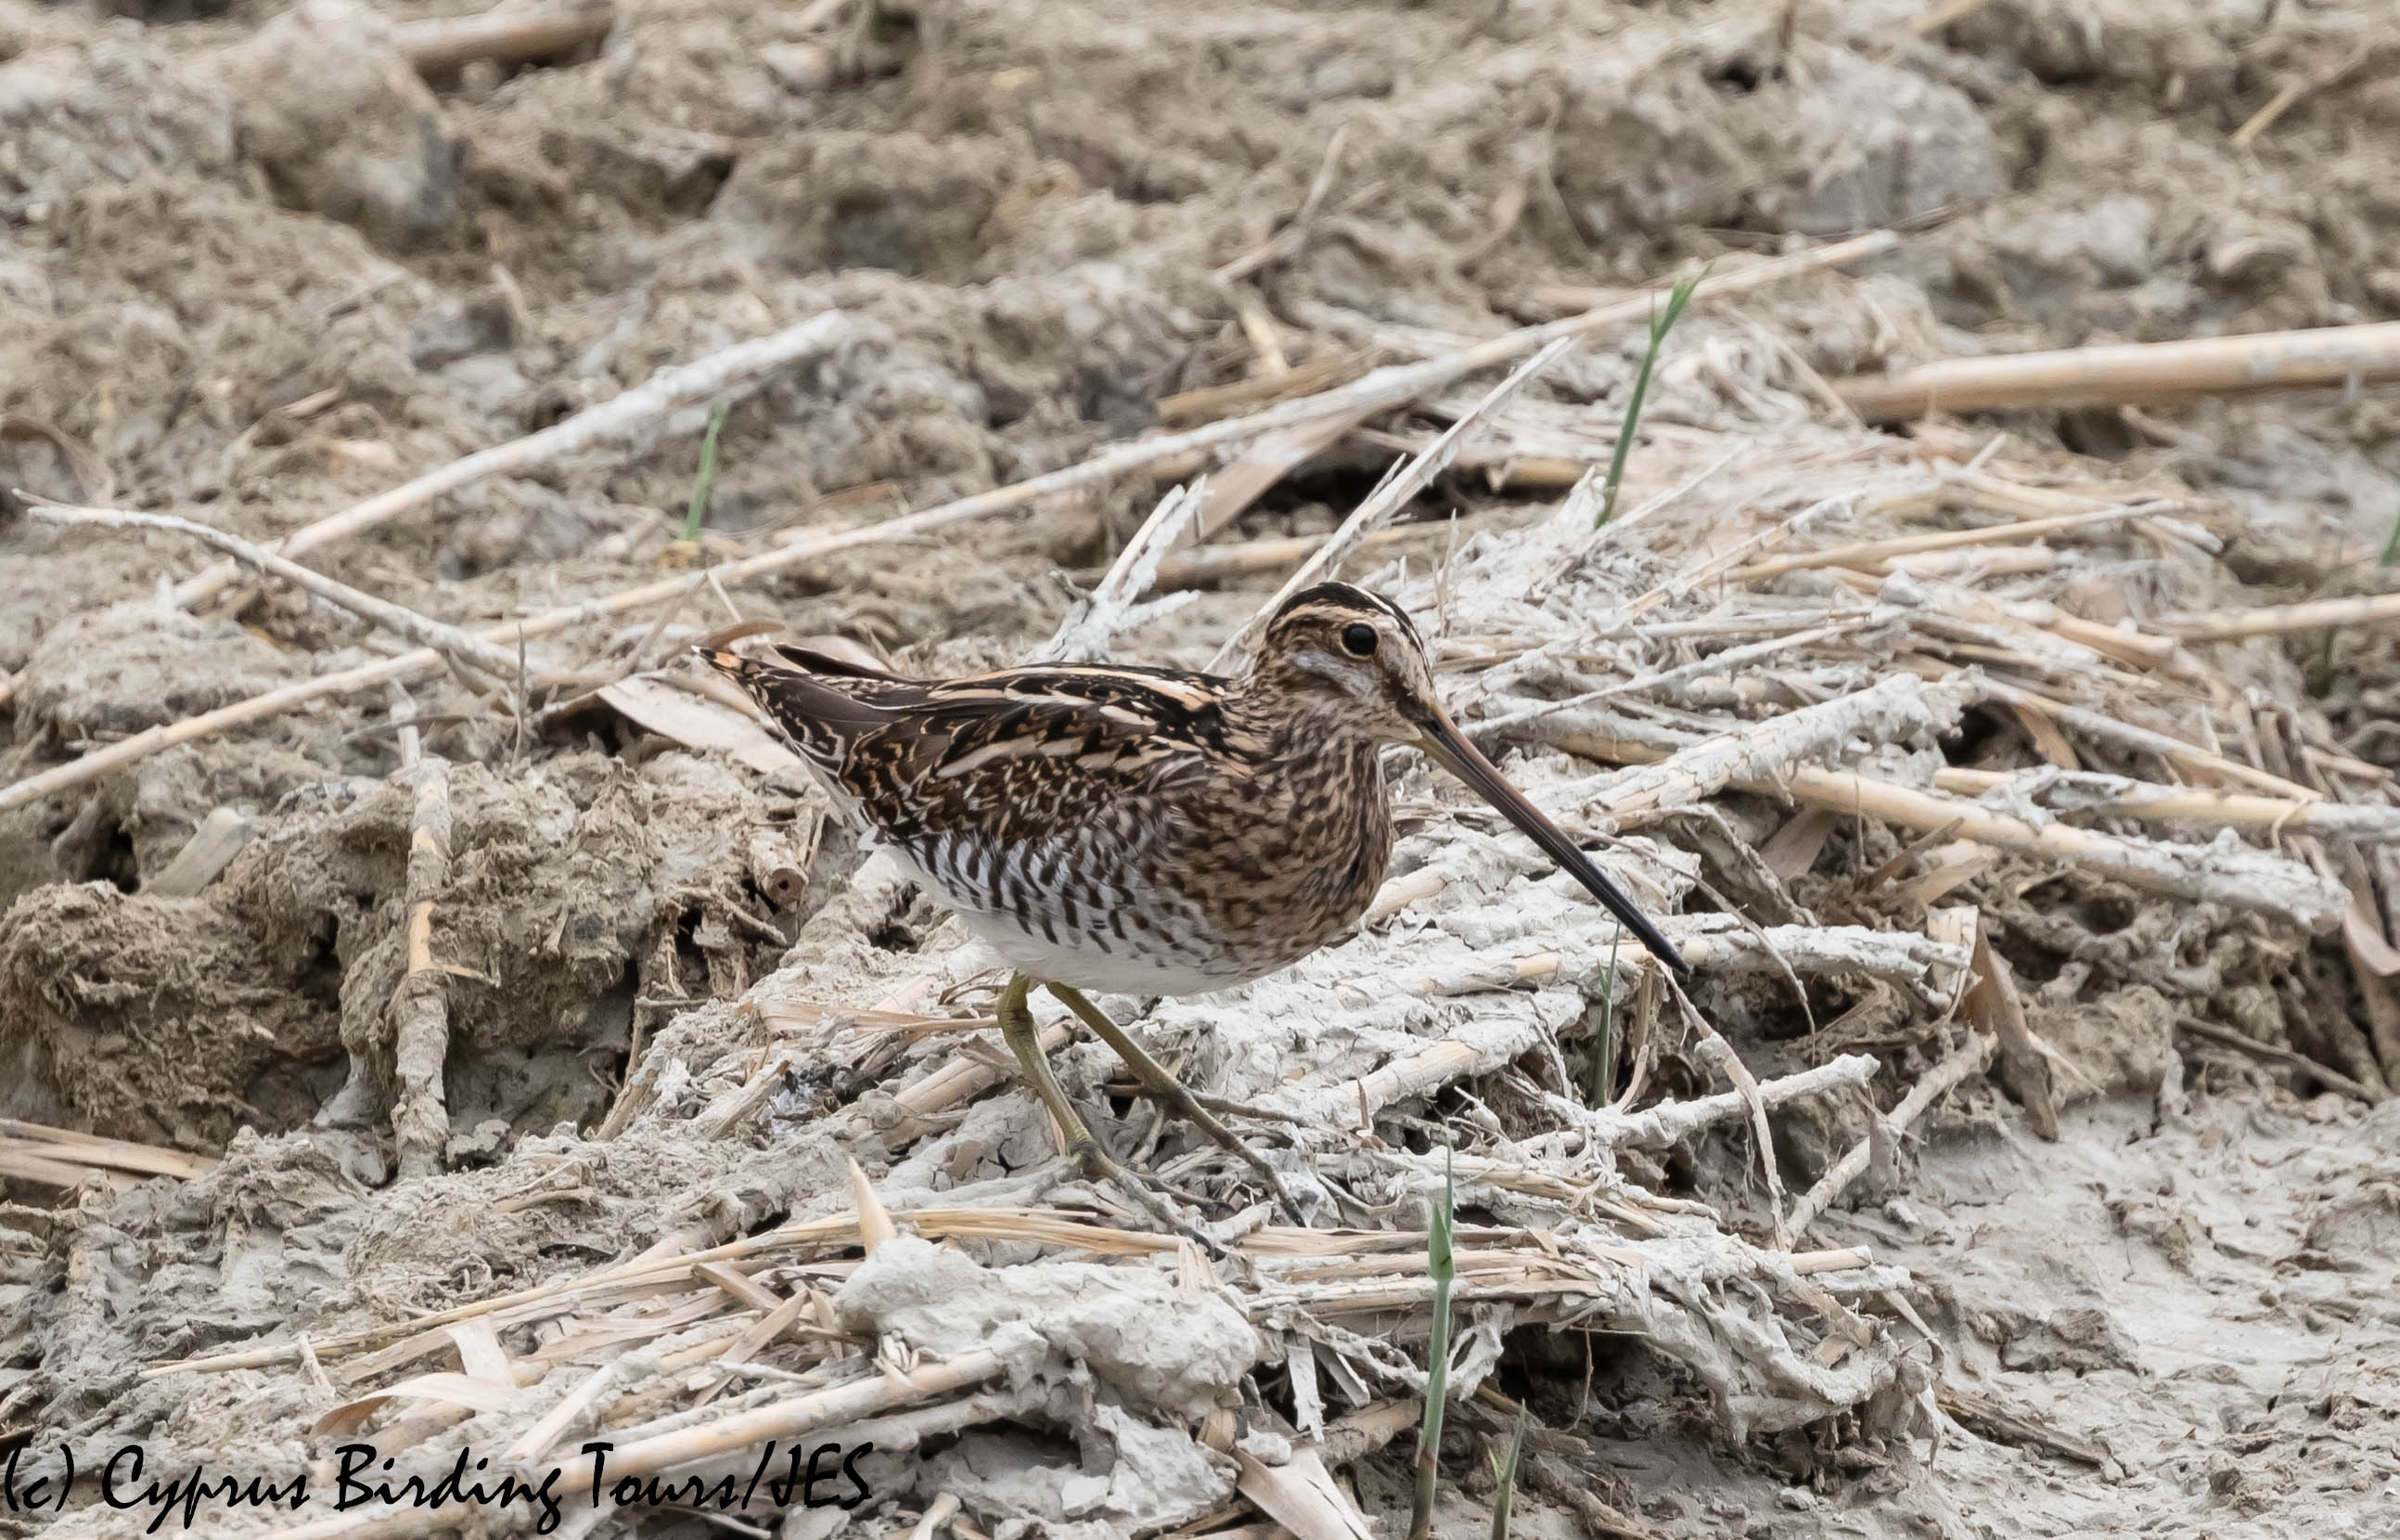 Common Snipe, Larnaca 15th October 2019 (c) Cyprus Birding Tours